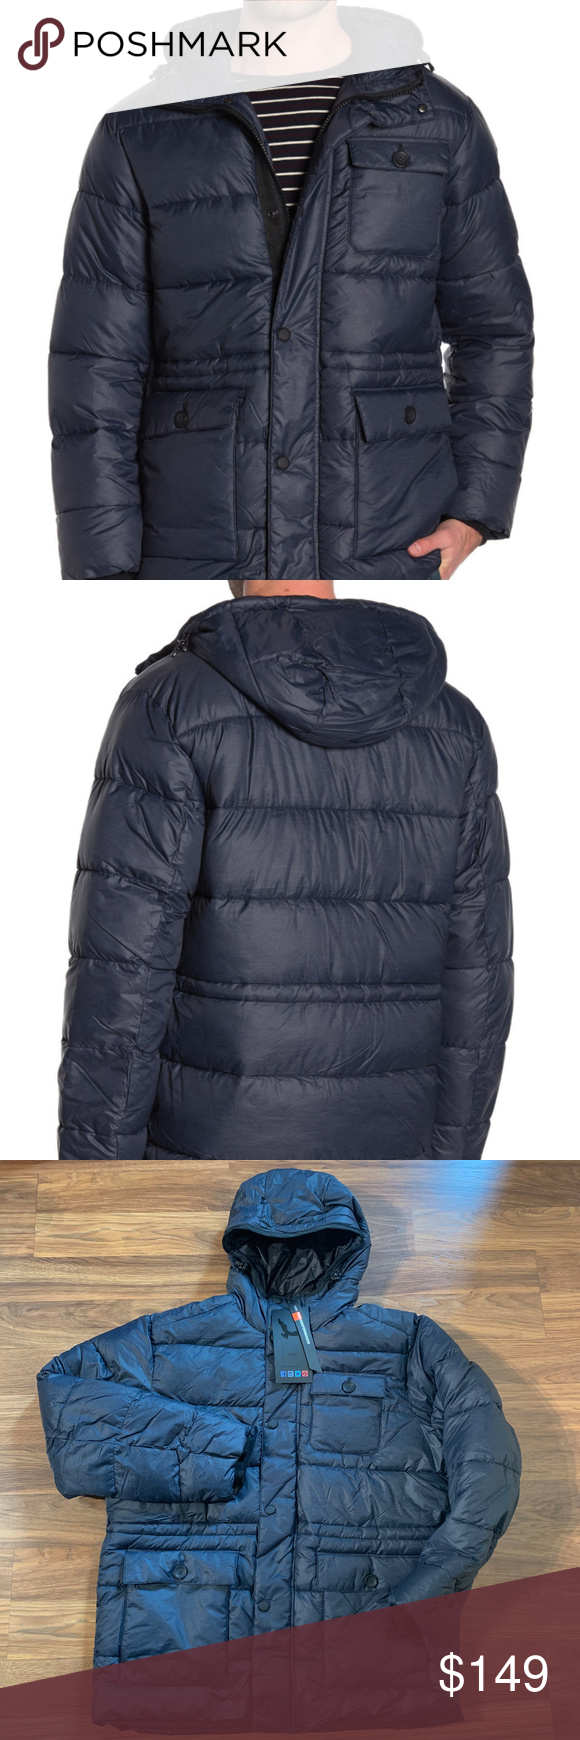 Hawke Co Field Quilted Puffer Jacket Nwt In 2021 Quilted Puffer Jacket Puffer Jacket Women Mens Puffer Jacket [ 1740 x 580 Pixel ]